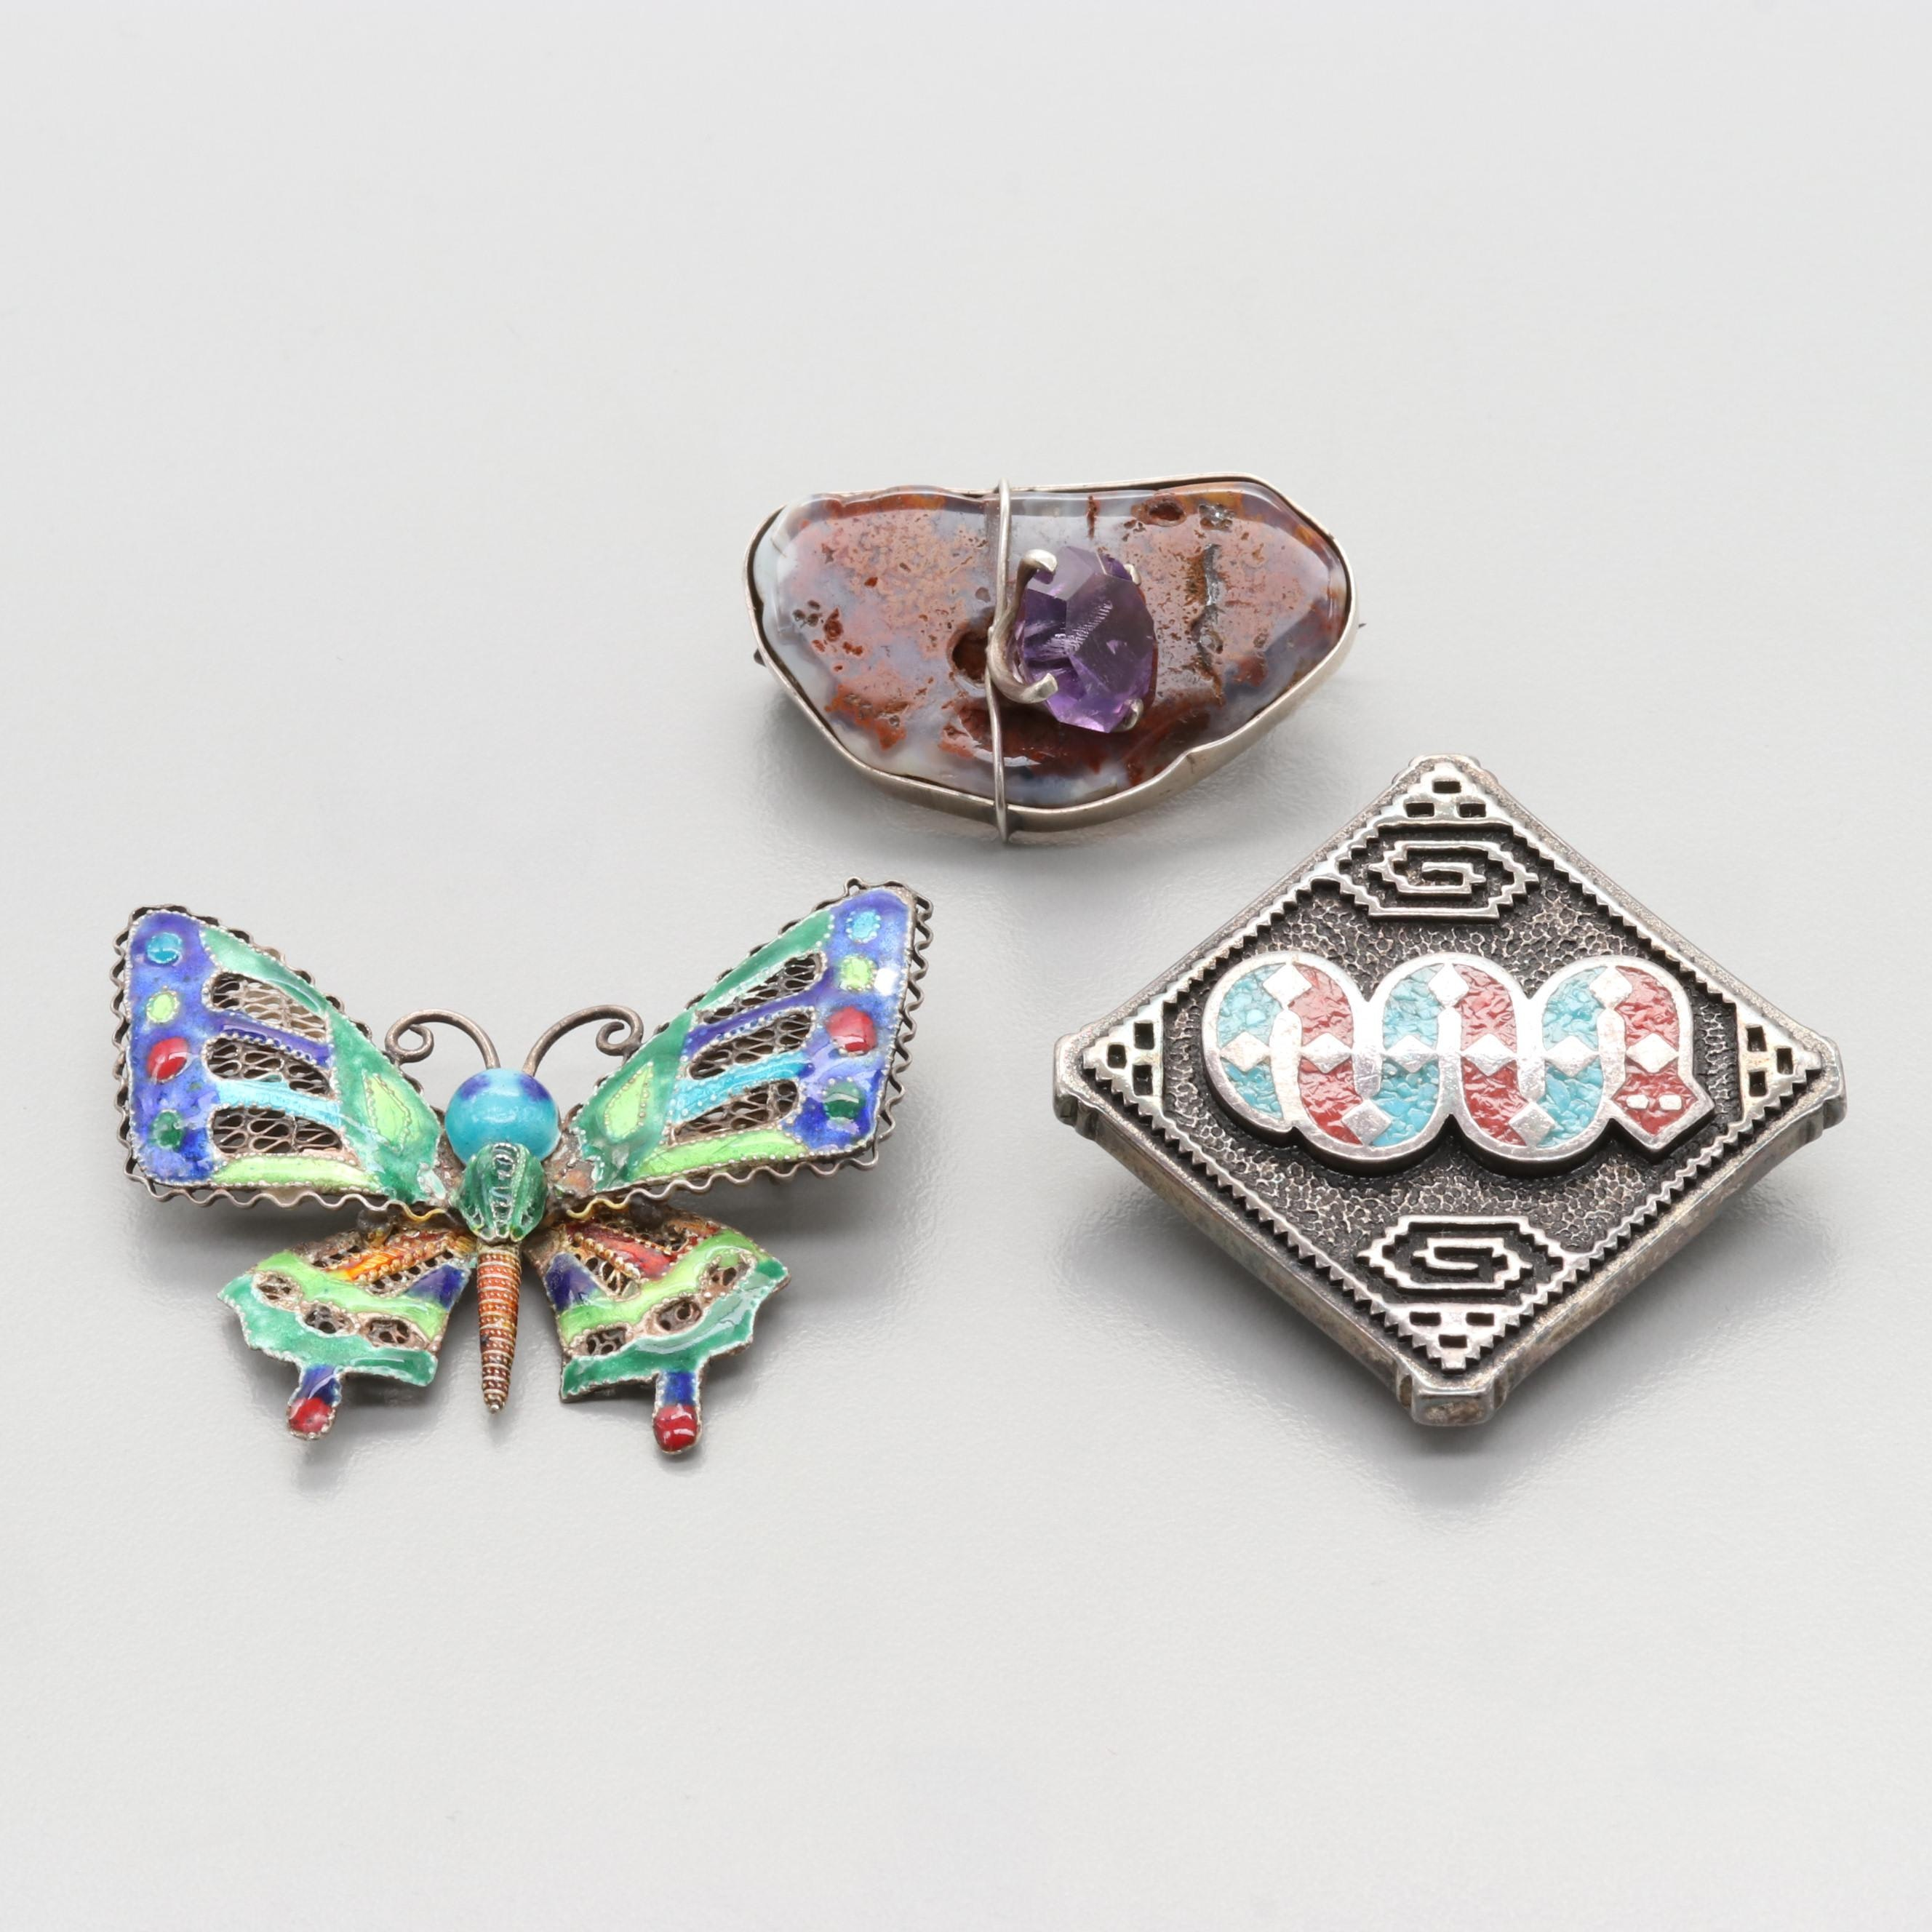 Sterling Amethyst, Agate, and Enamel Brooches Including Silver Tone Bolo Tie